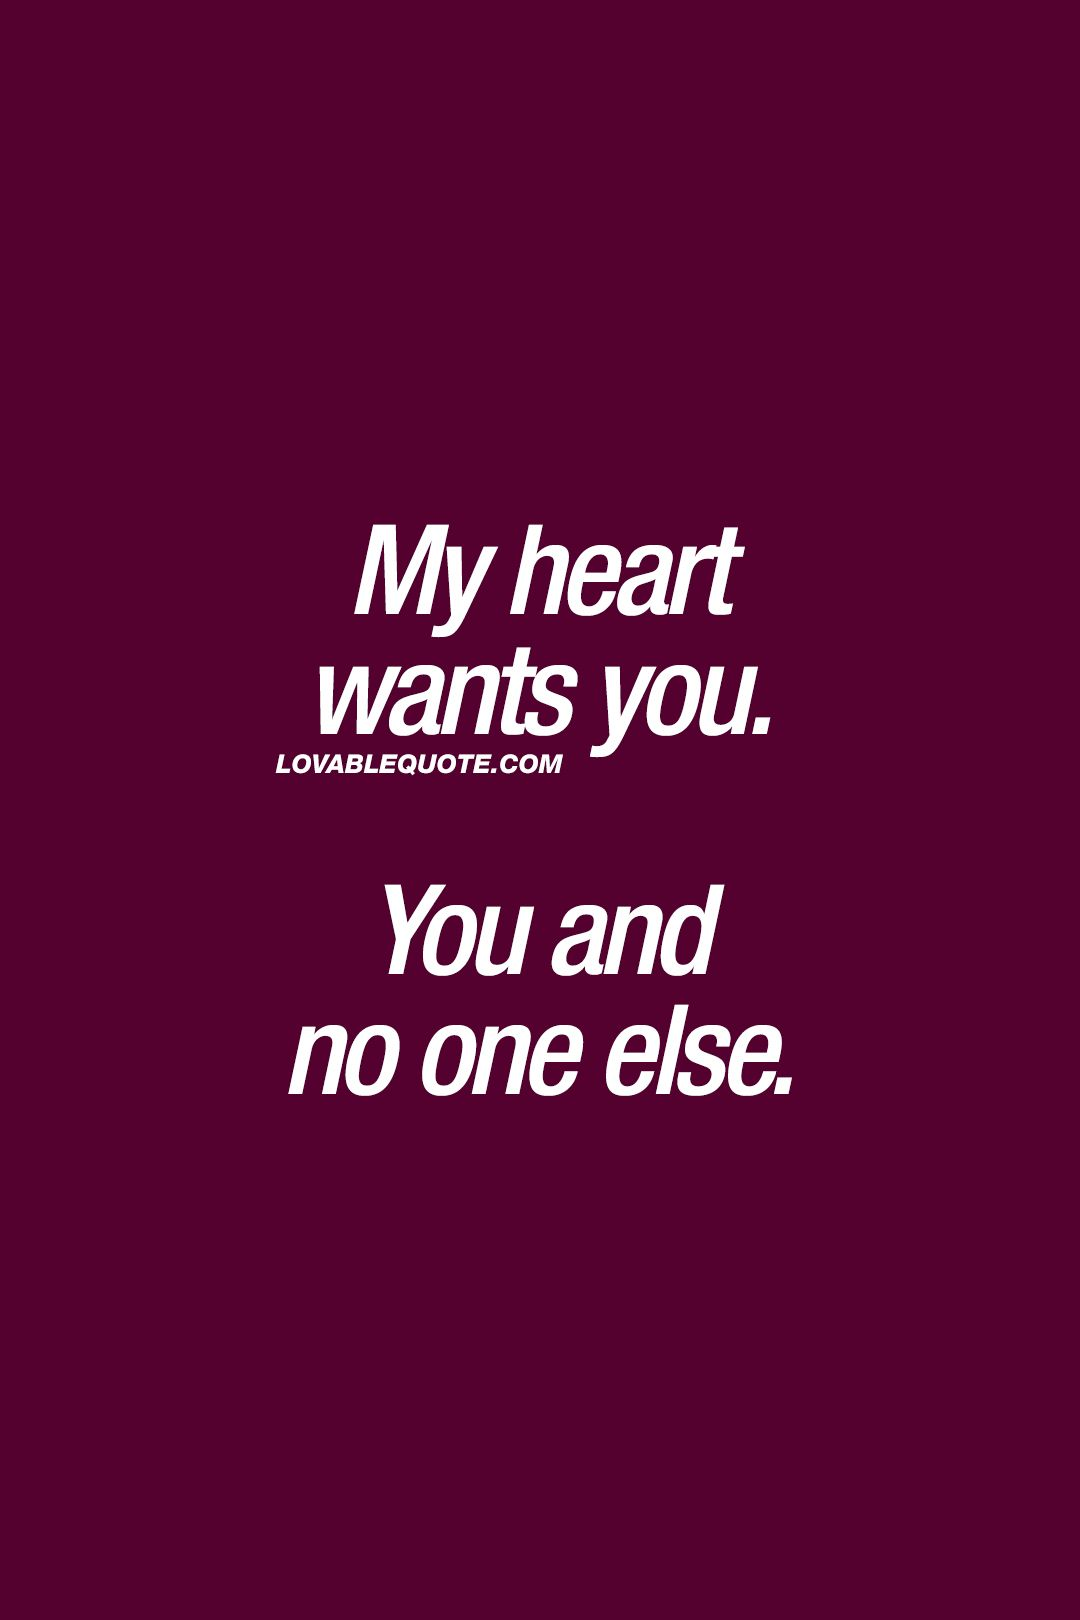 Lovable Quotes My Heart Wants Youyou And No One Else❤ Lovable Quote